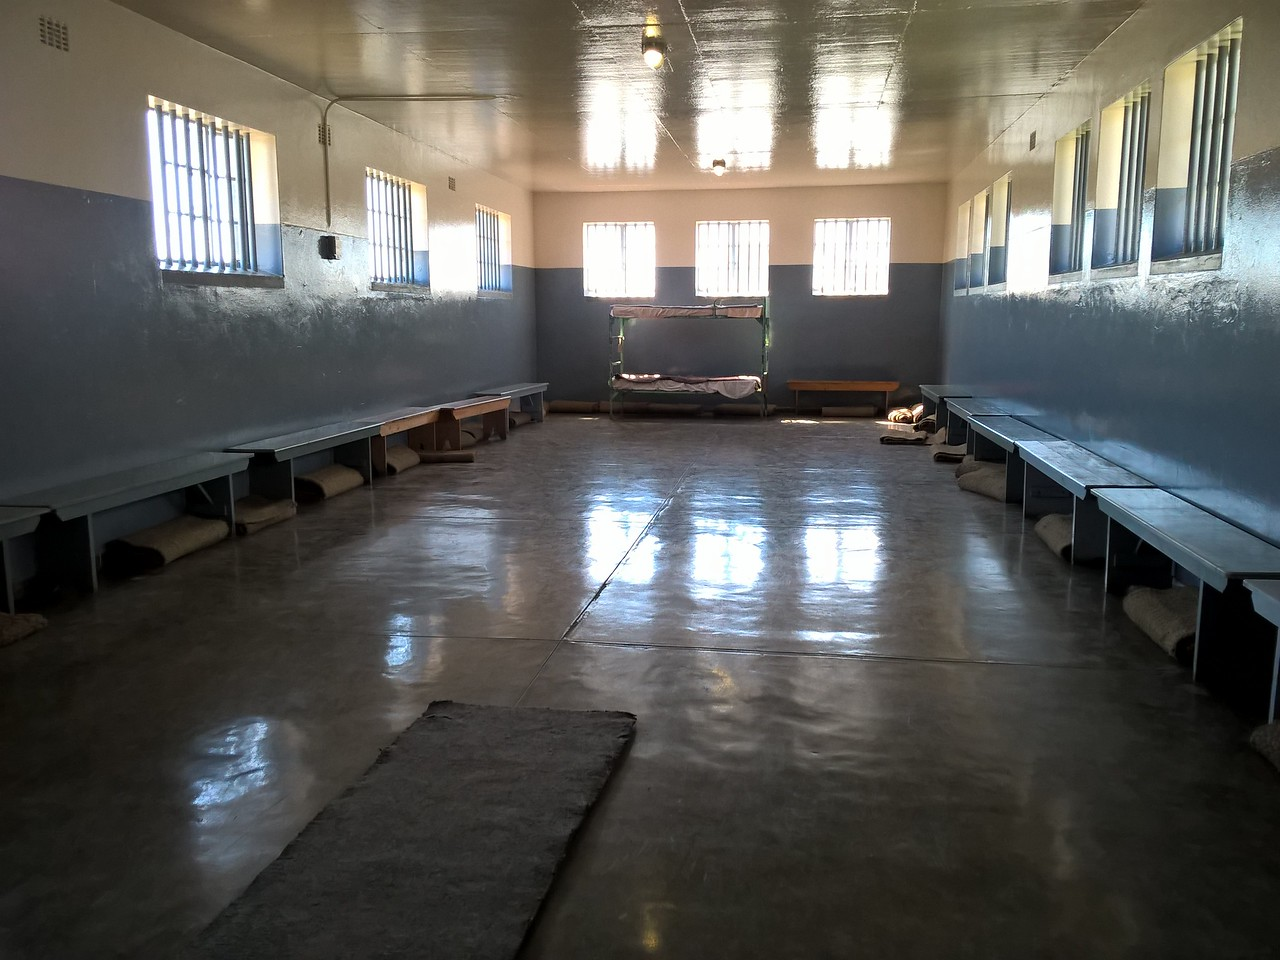 Some of the convicts were housed in large rooms with bedding on the floor for the night time.